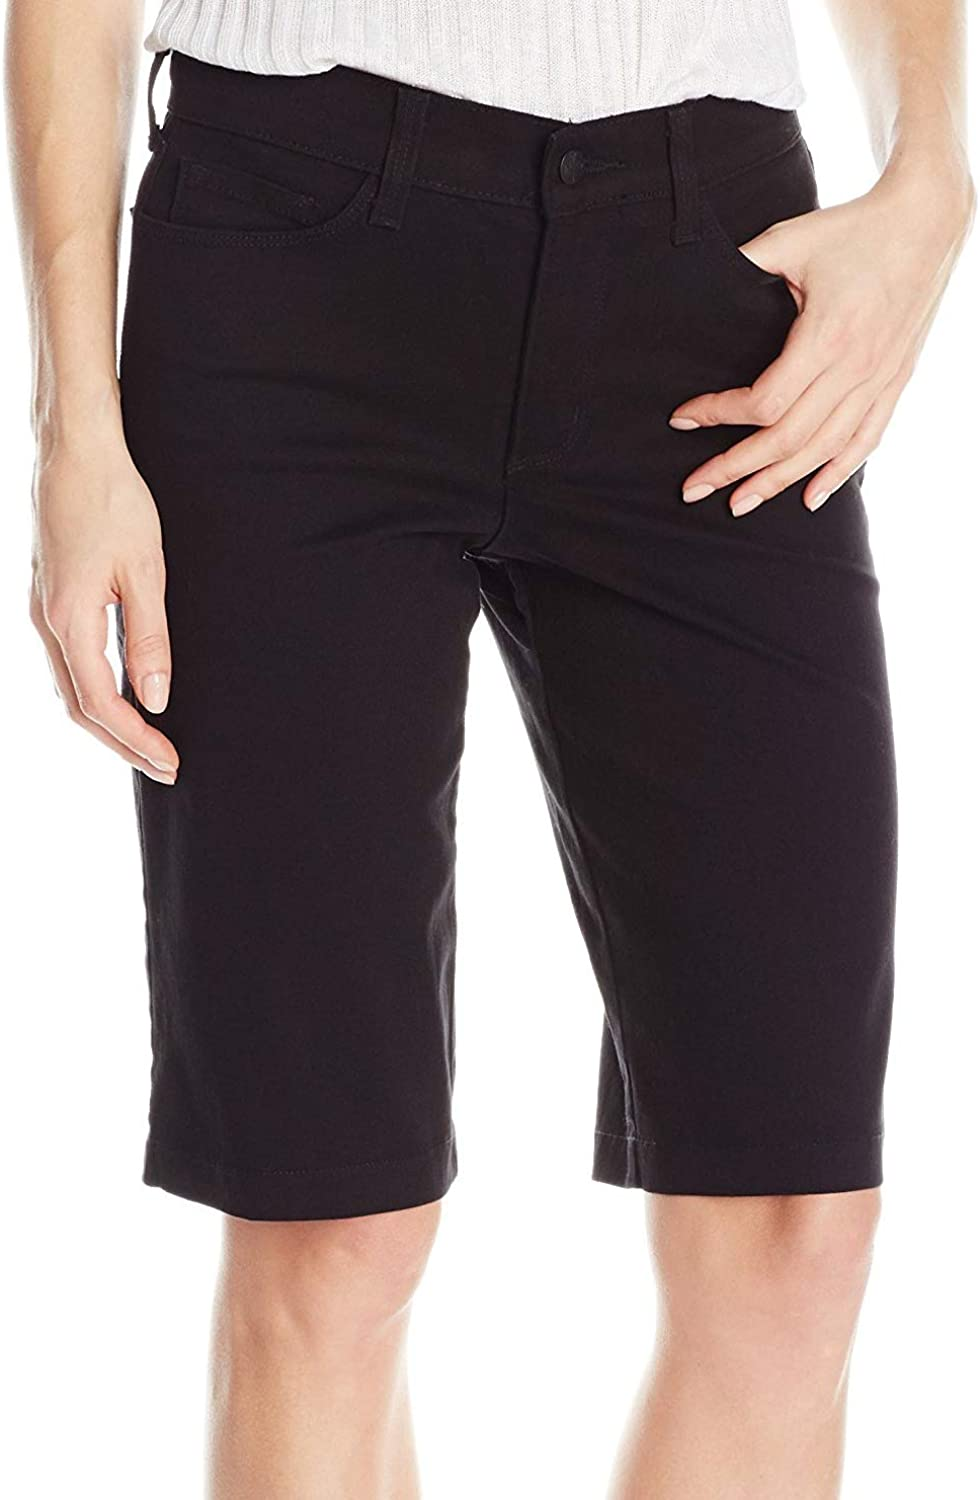 Popular shop is the lowest price challenge NYDJ Women's Short NEW before selling Haley